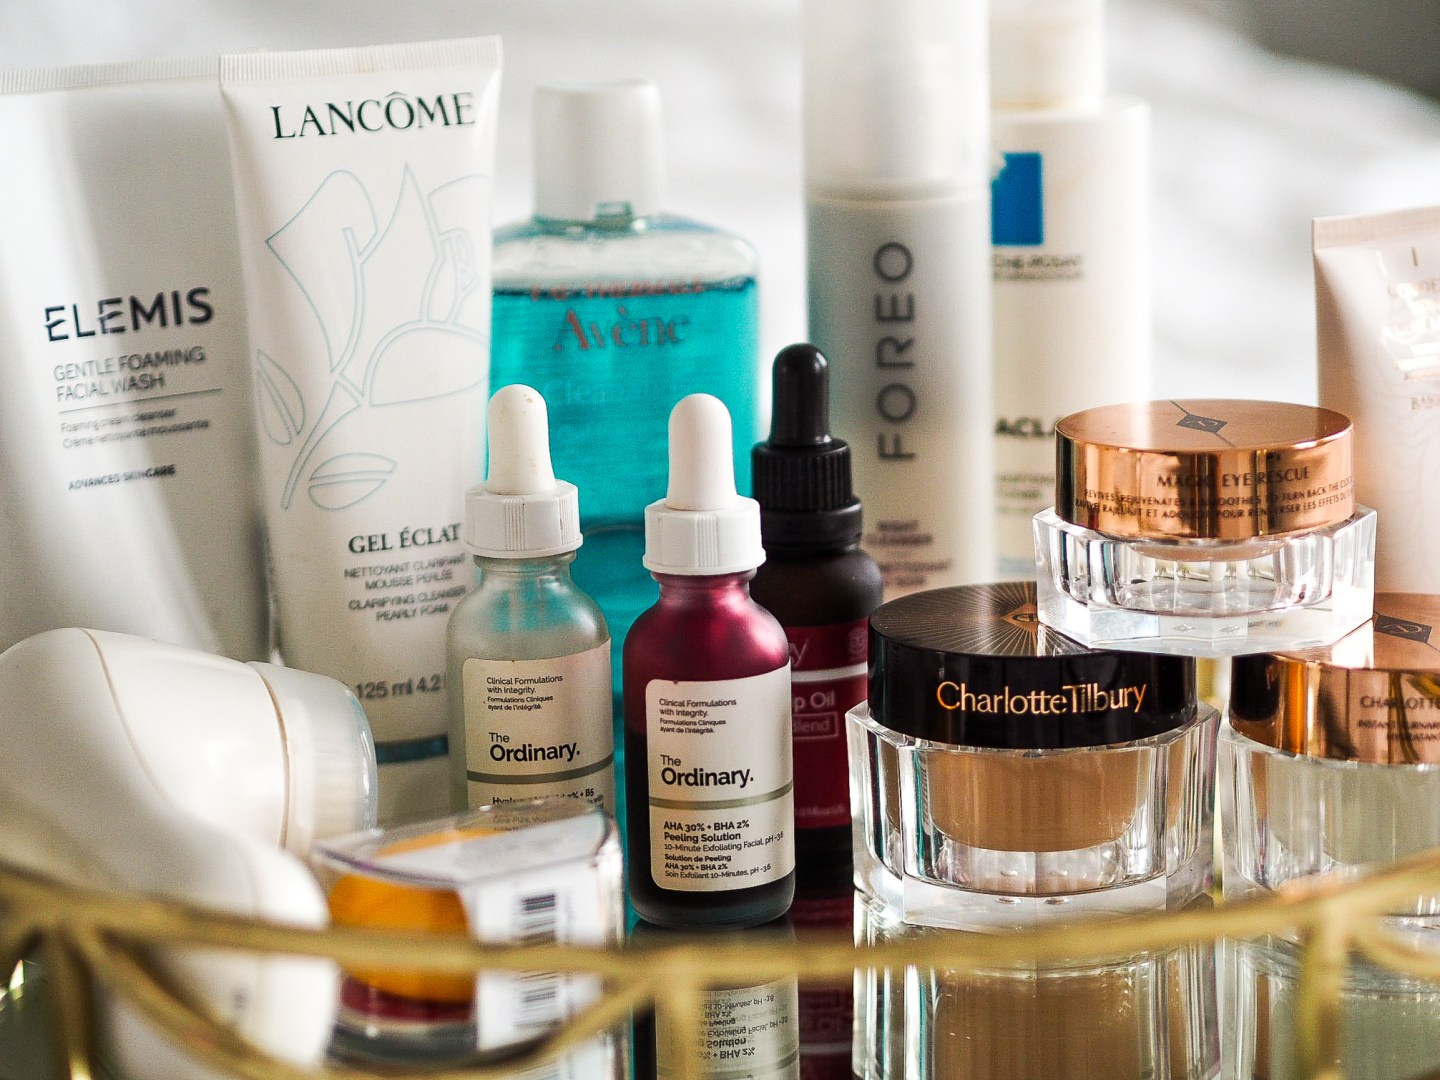 Skincare Routine Charlotte Tilbury, The Ordinary, Avene, Clarisonic